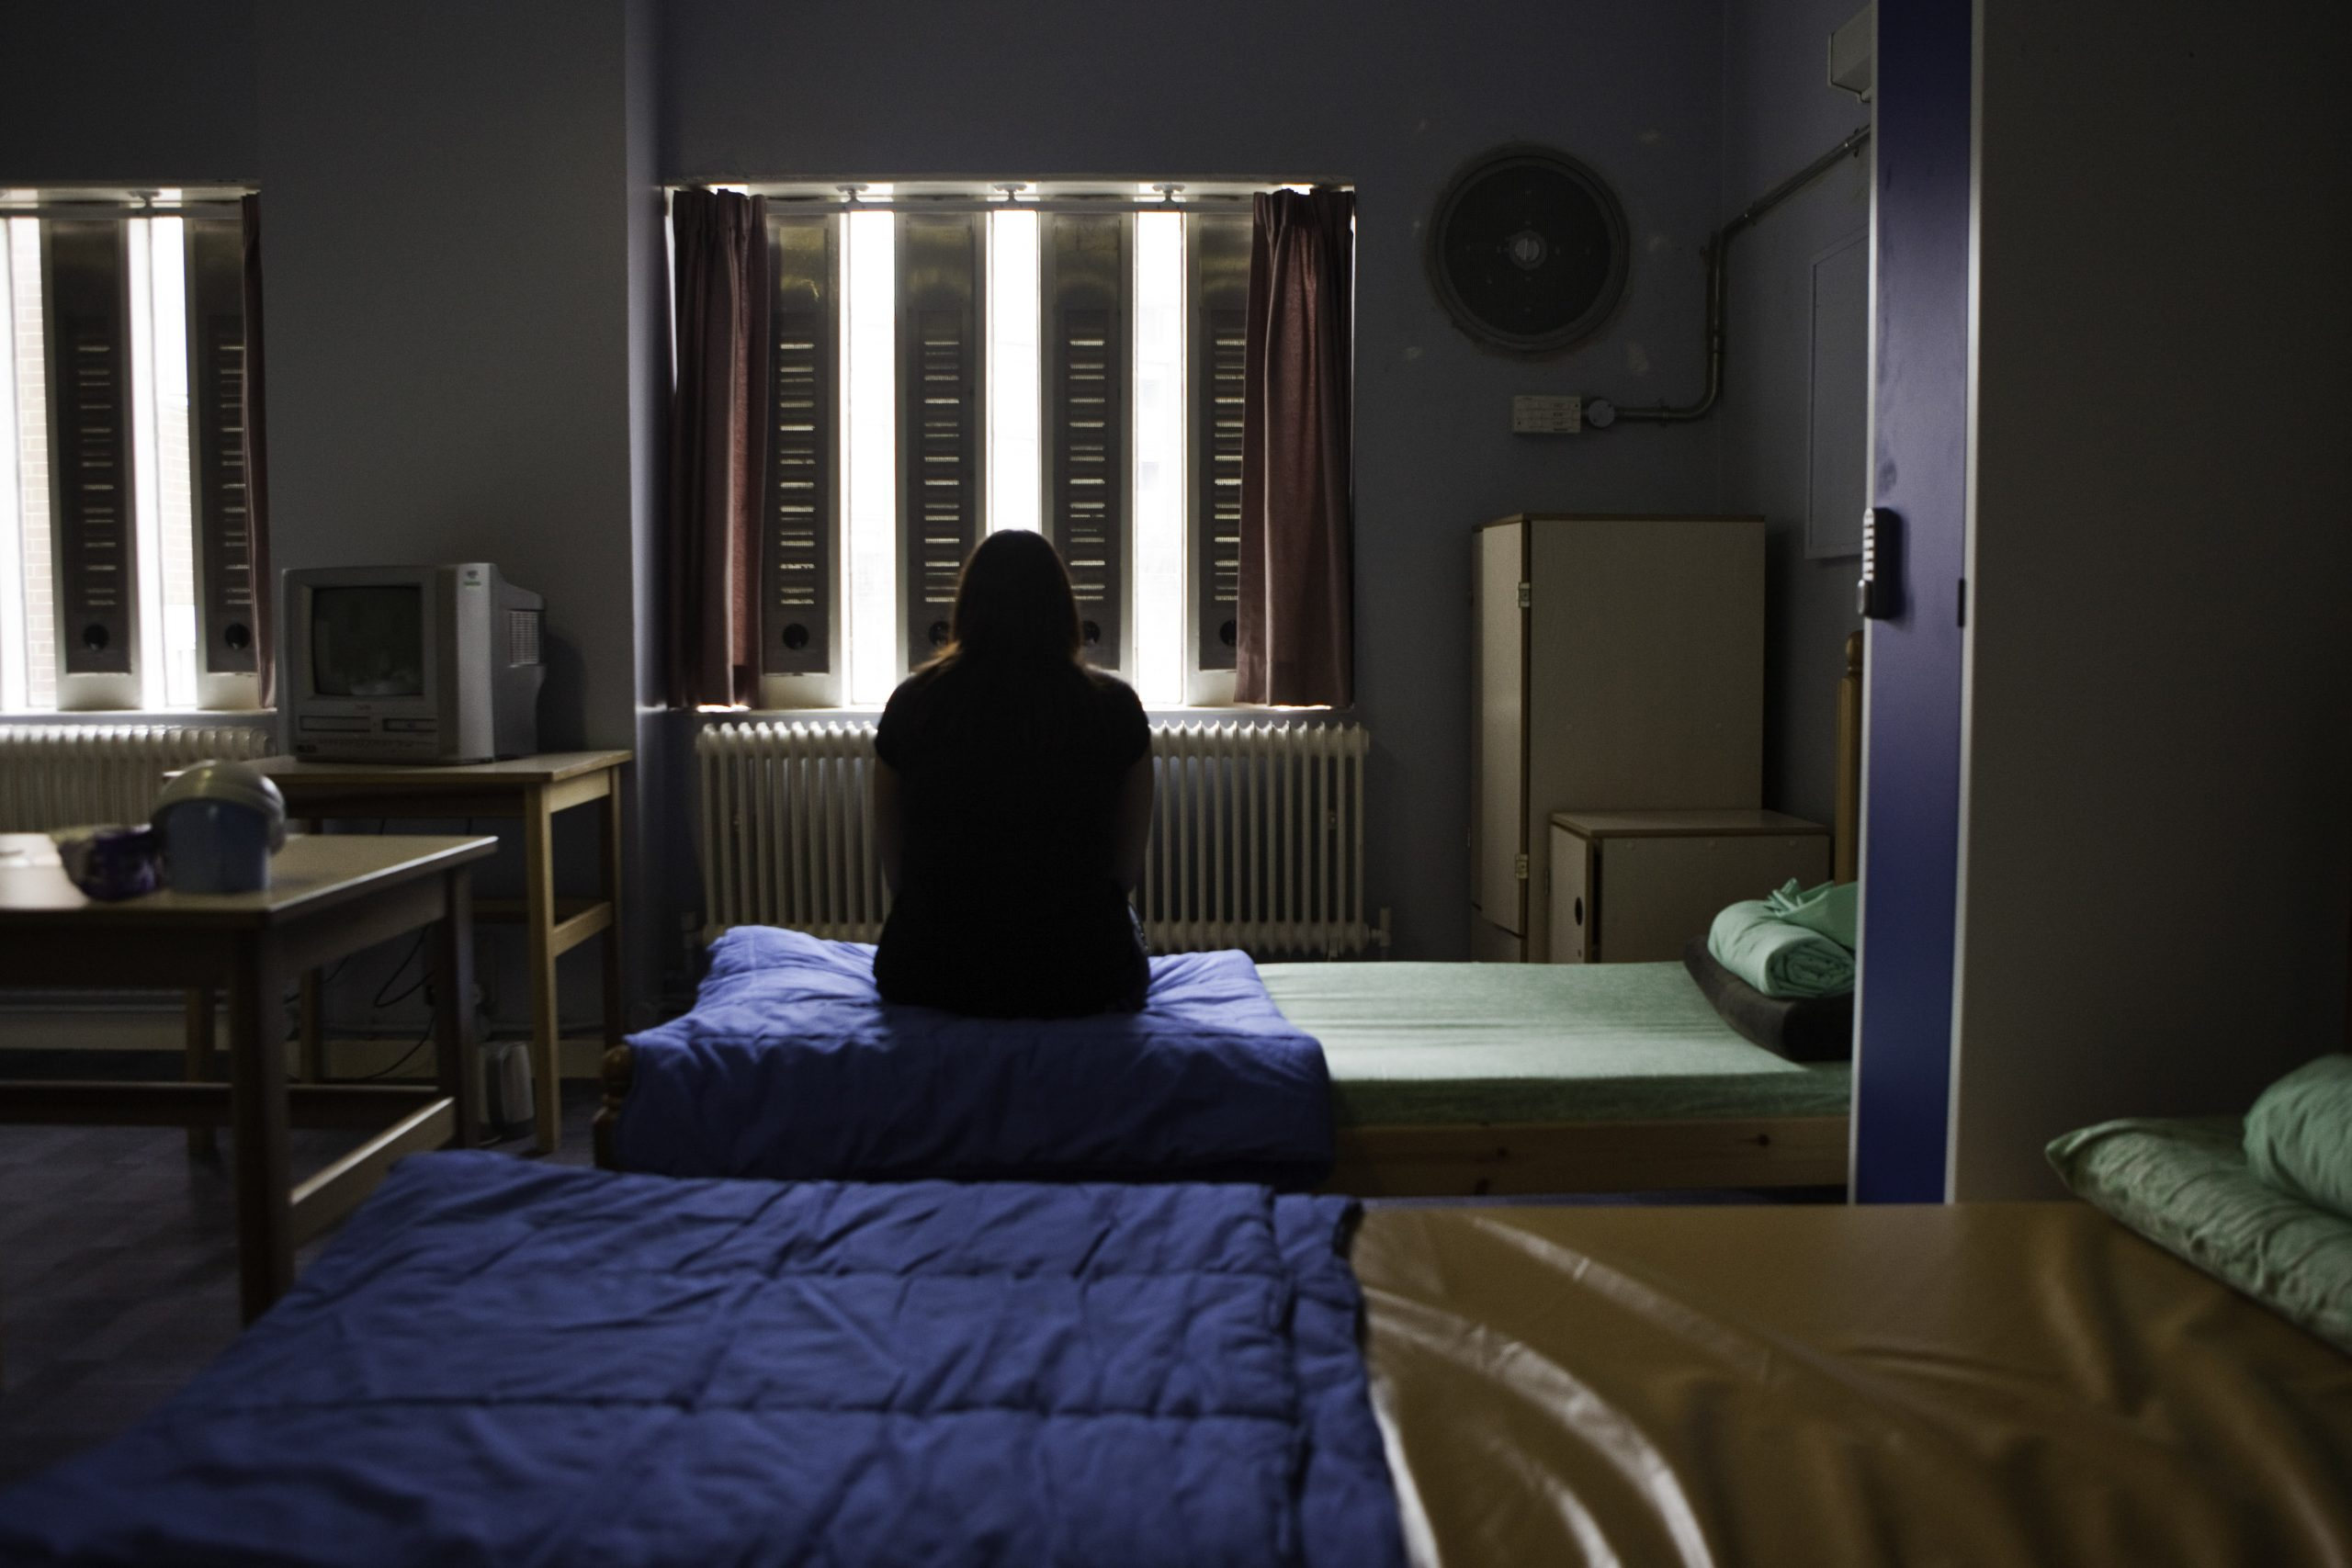 A prisoner sitting on her bed in the first night suite at HMP Holloway, the main womens prison in London.